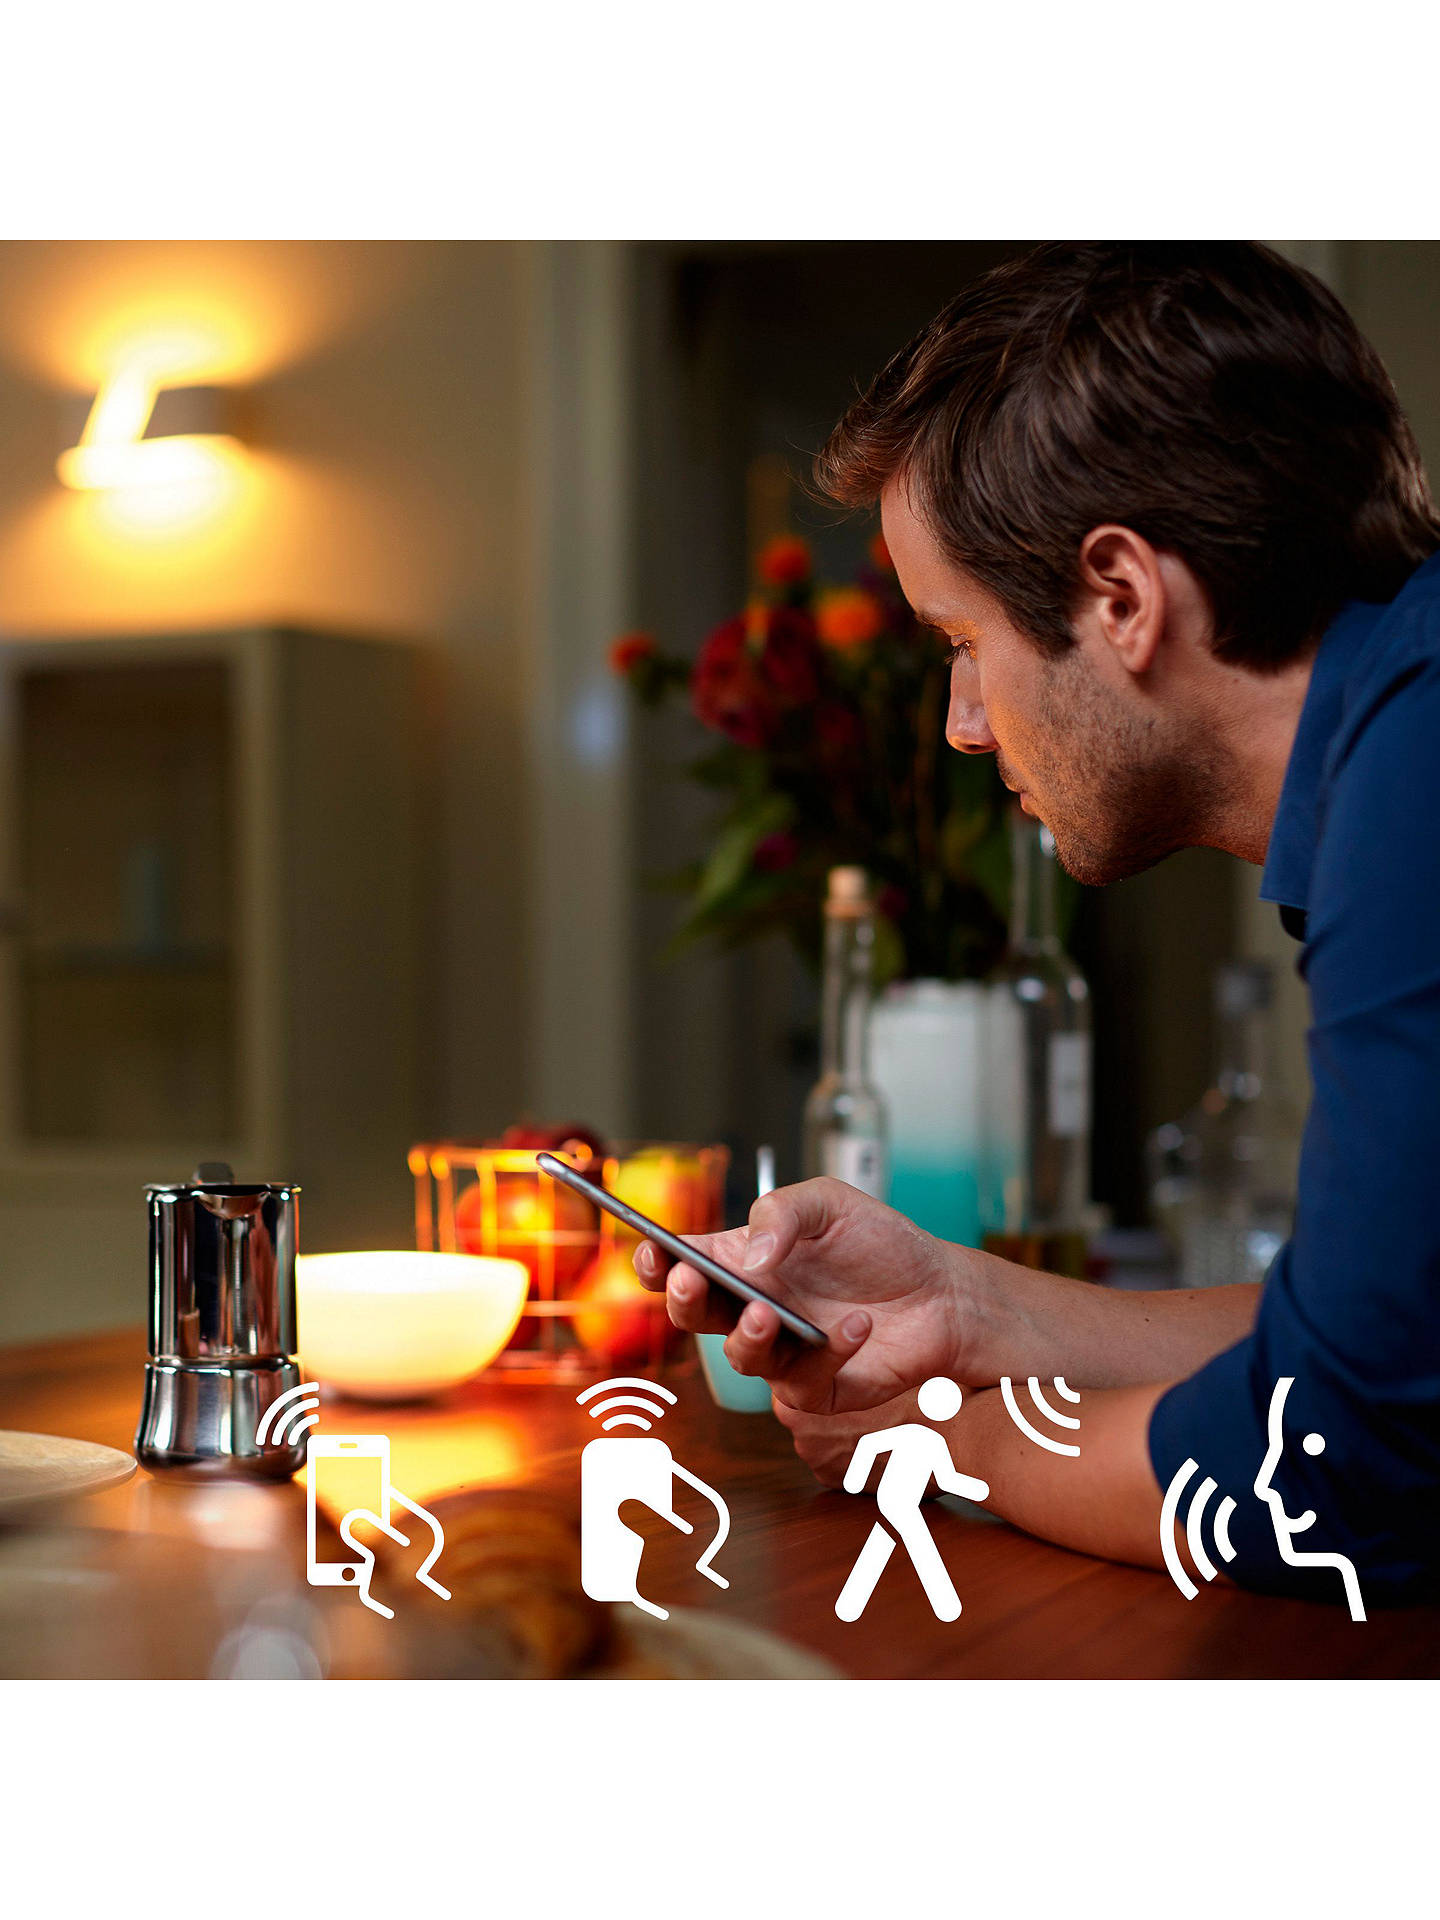 Buy Philips Hue White and Colour Ambiance Wireless Lighting LED Starter Kit with 3 Bulbs, 10W E27 Edison Screw Cap Online at johnlewis.com